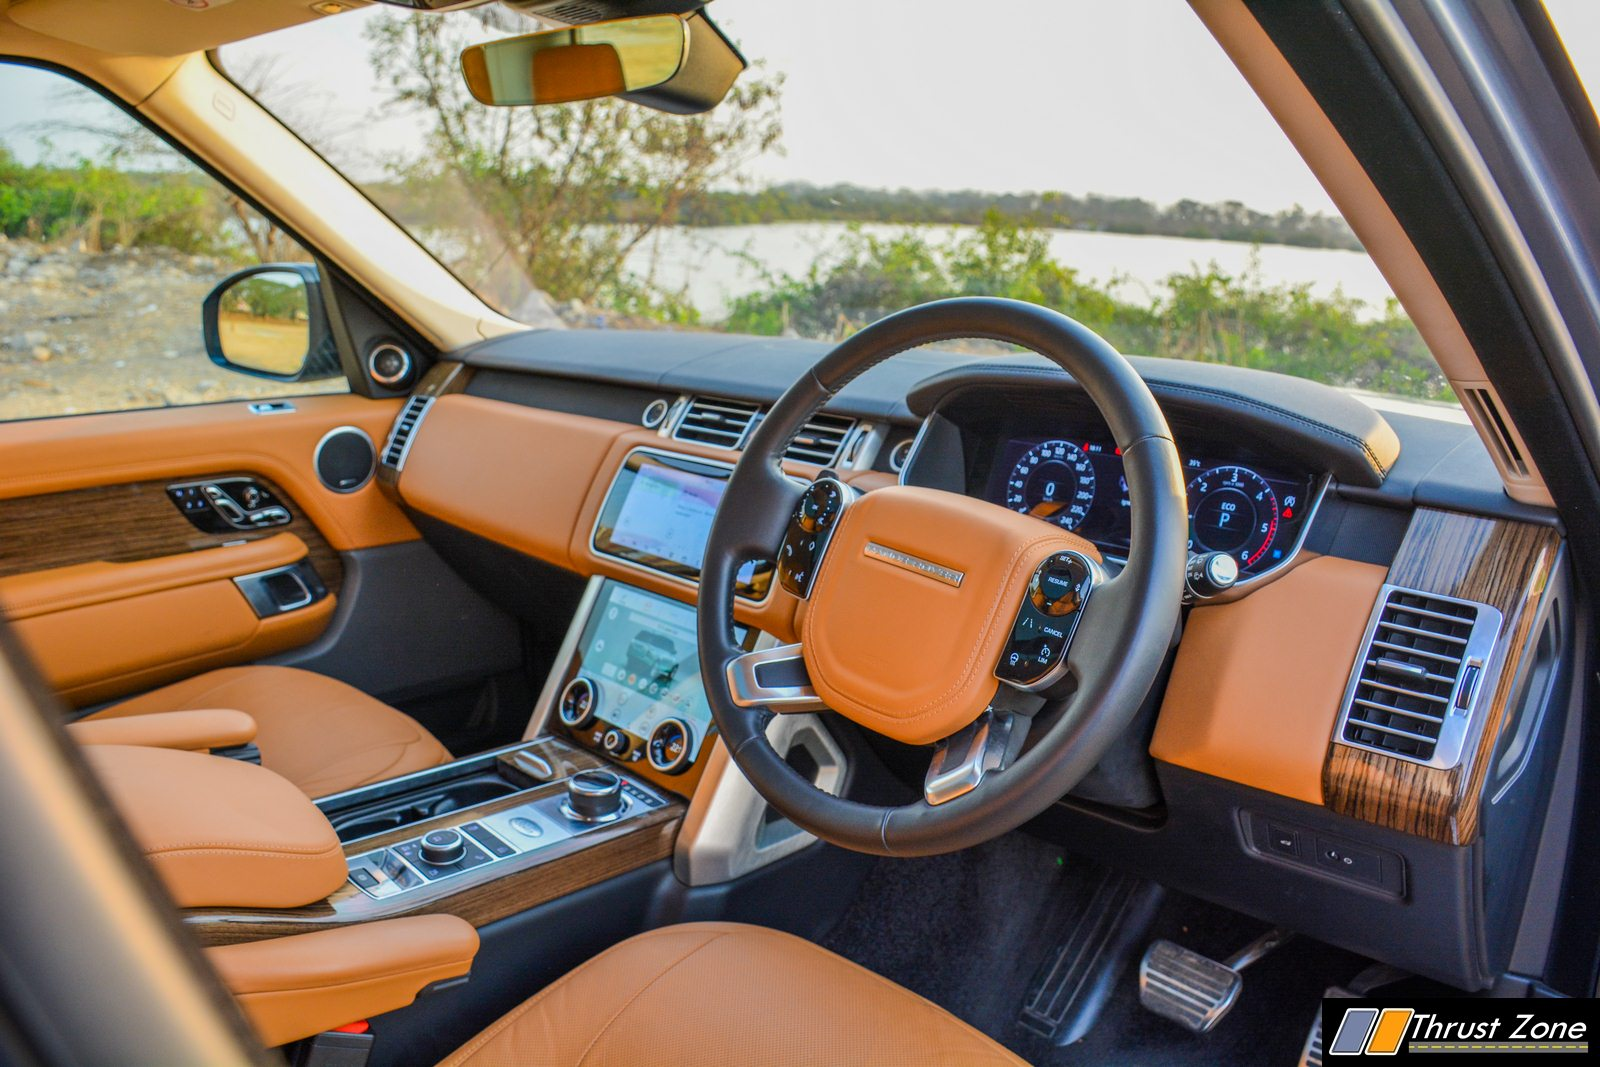 https://www.thrustzone.com/wp-content/uploads/2019/05/2019-Range-Rover-India-Diesel-V6-Review-20.jpg